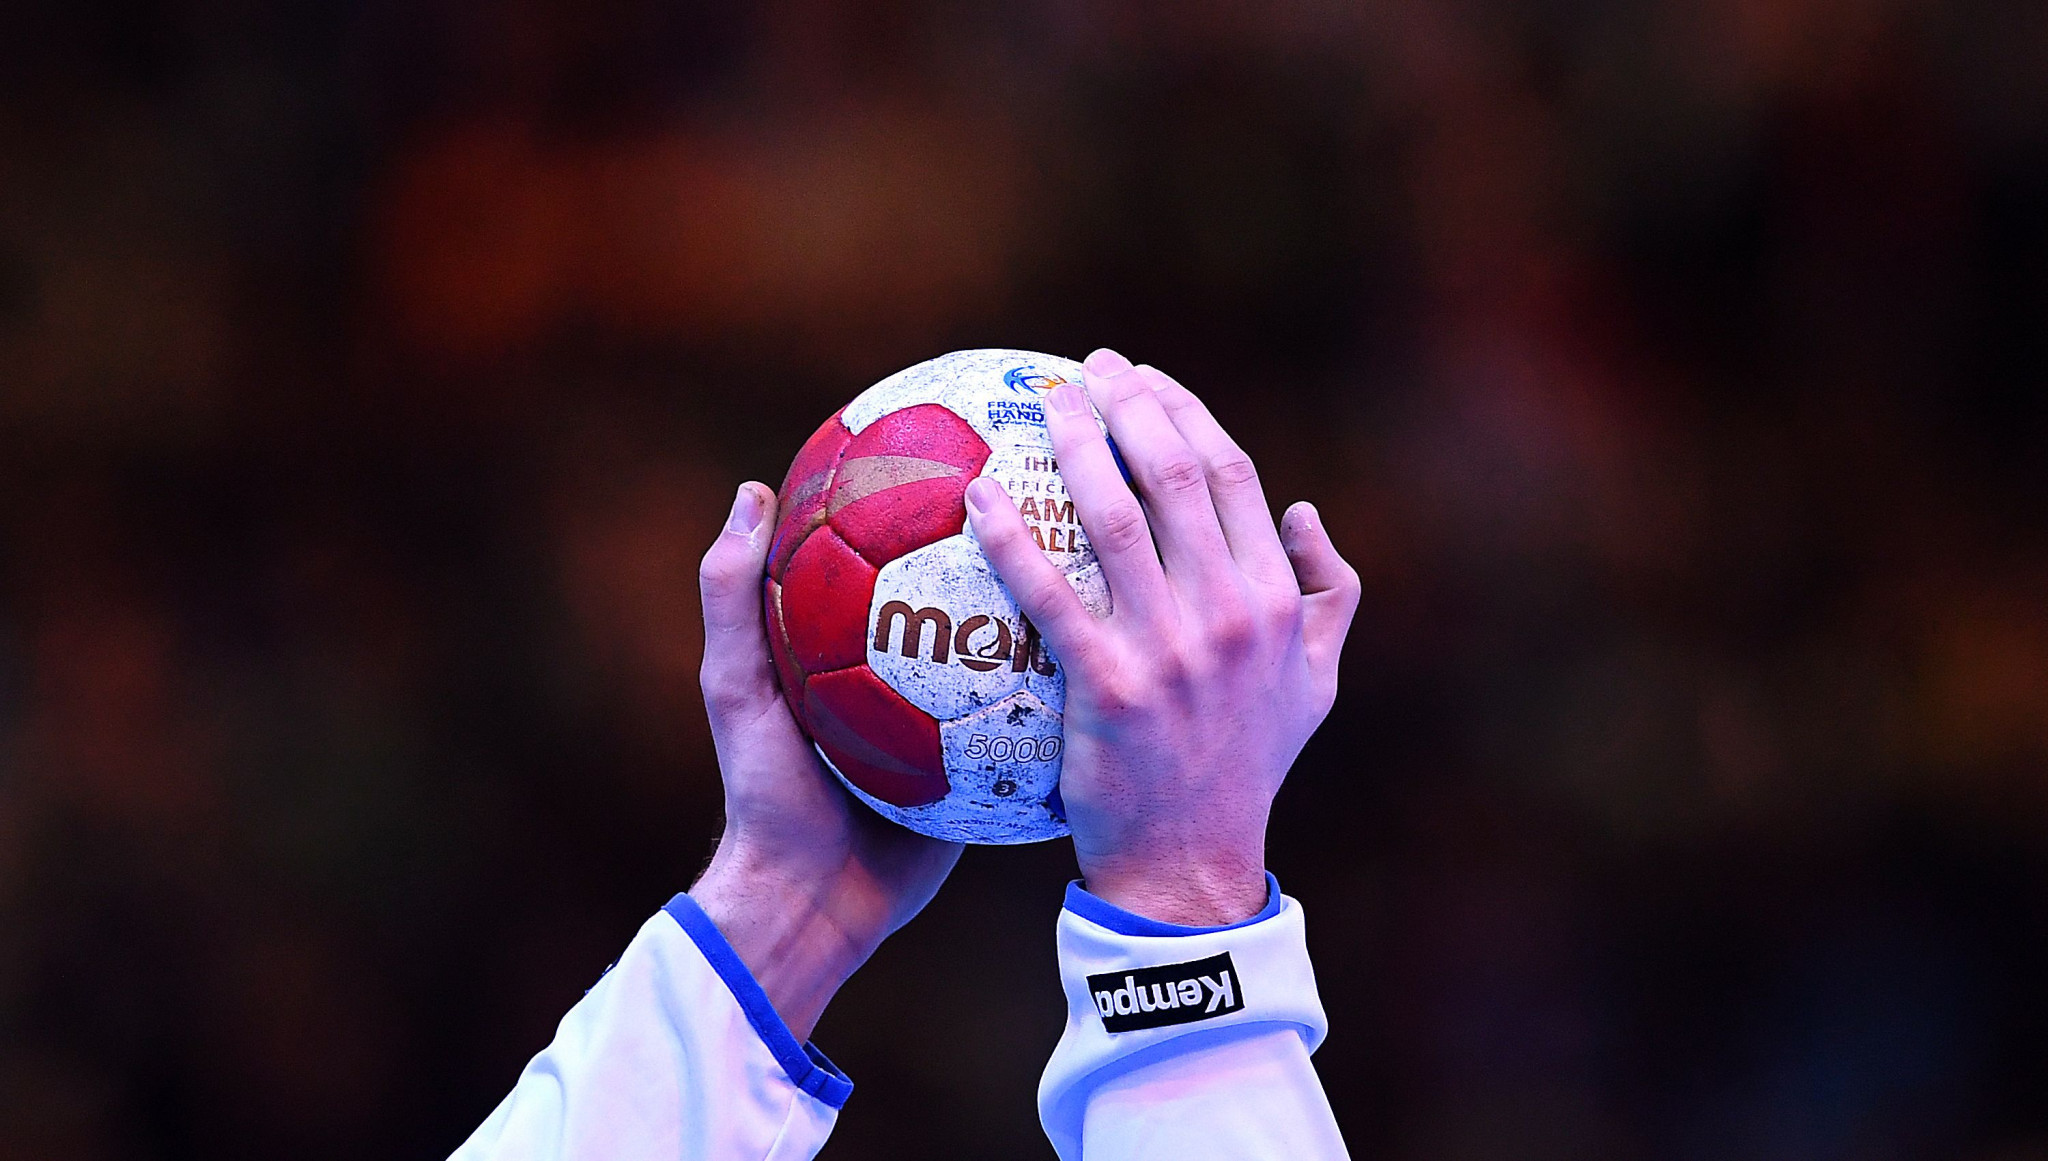 Former Referees Commission chair rebuts IHF criticism in nominations dispute